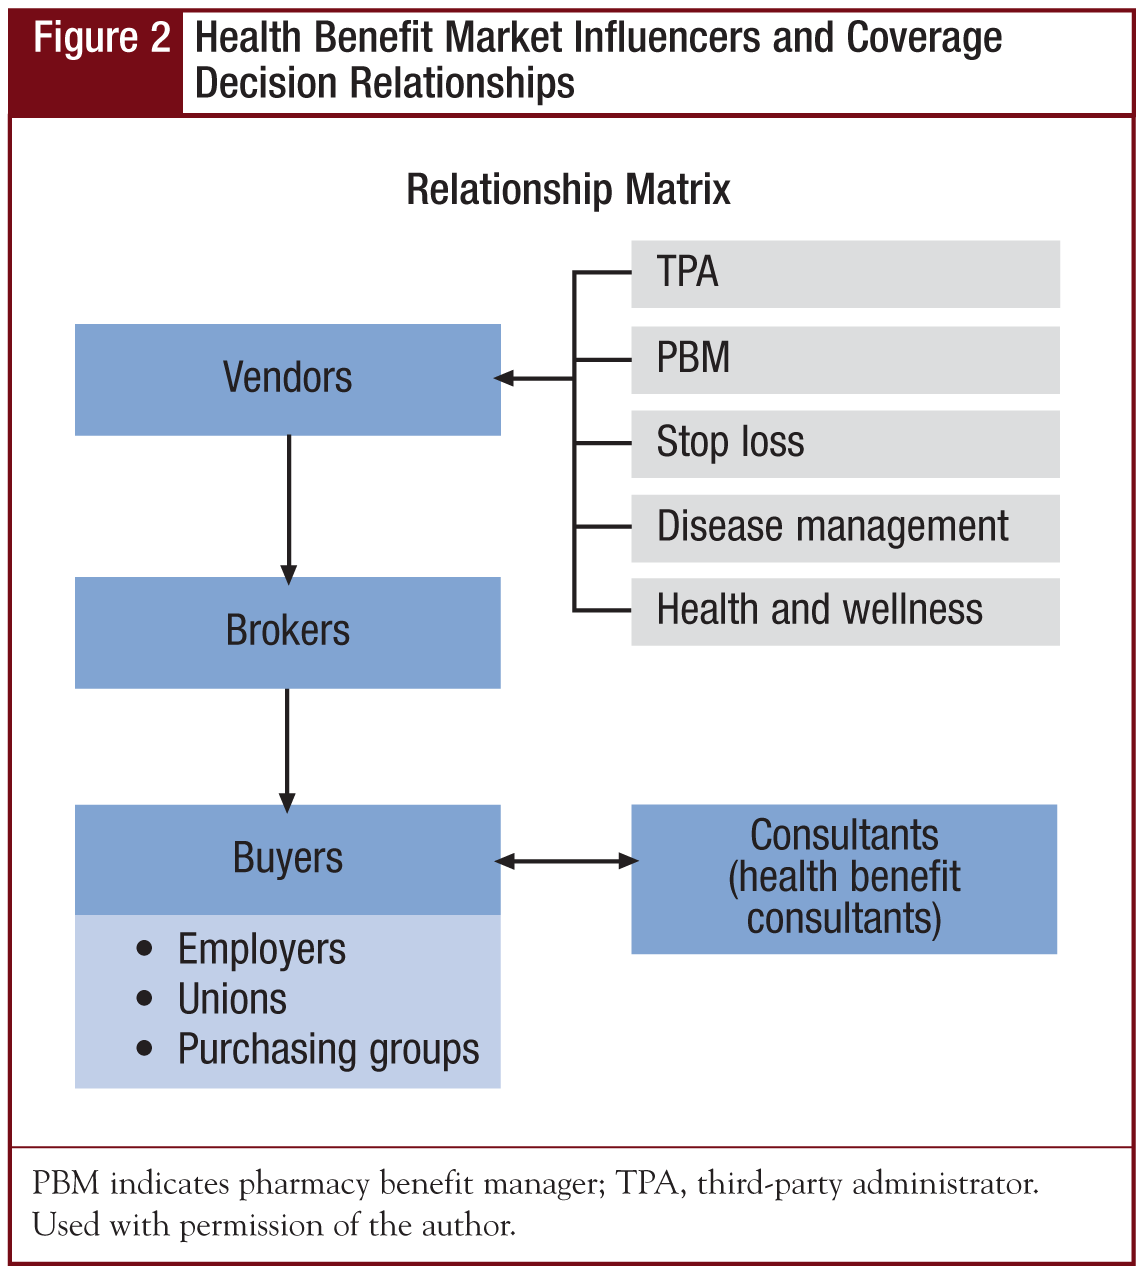 Health Benefit Market Influencers and Coverage Decision Relationships